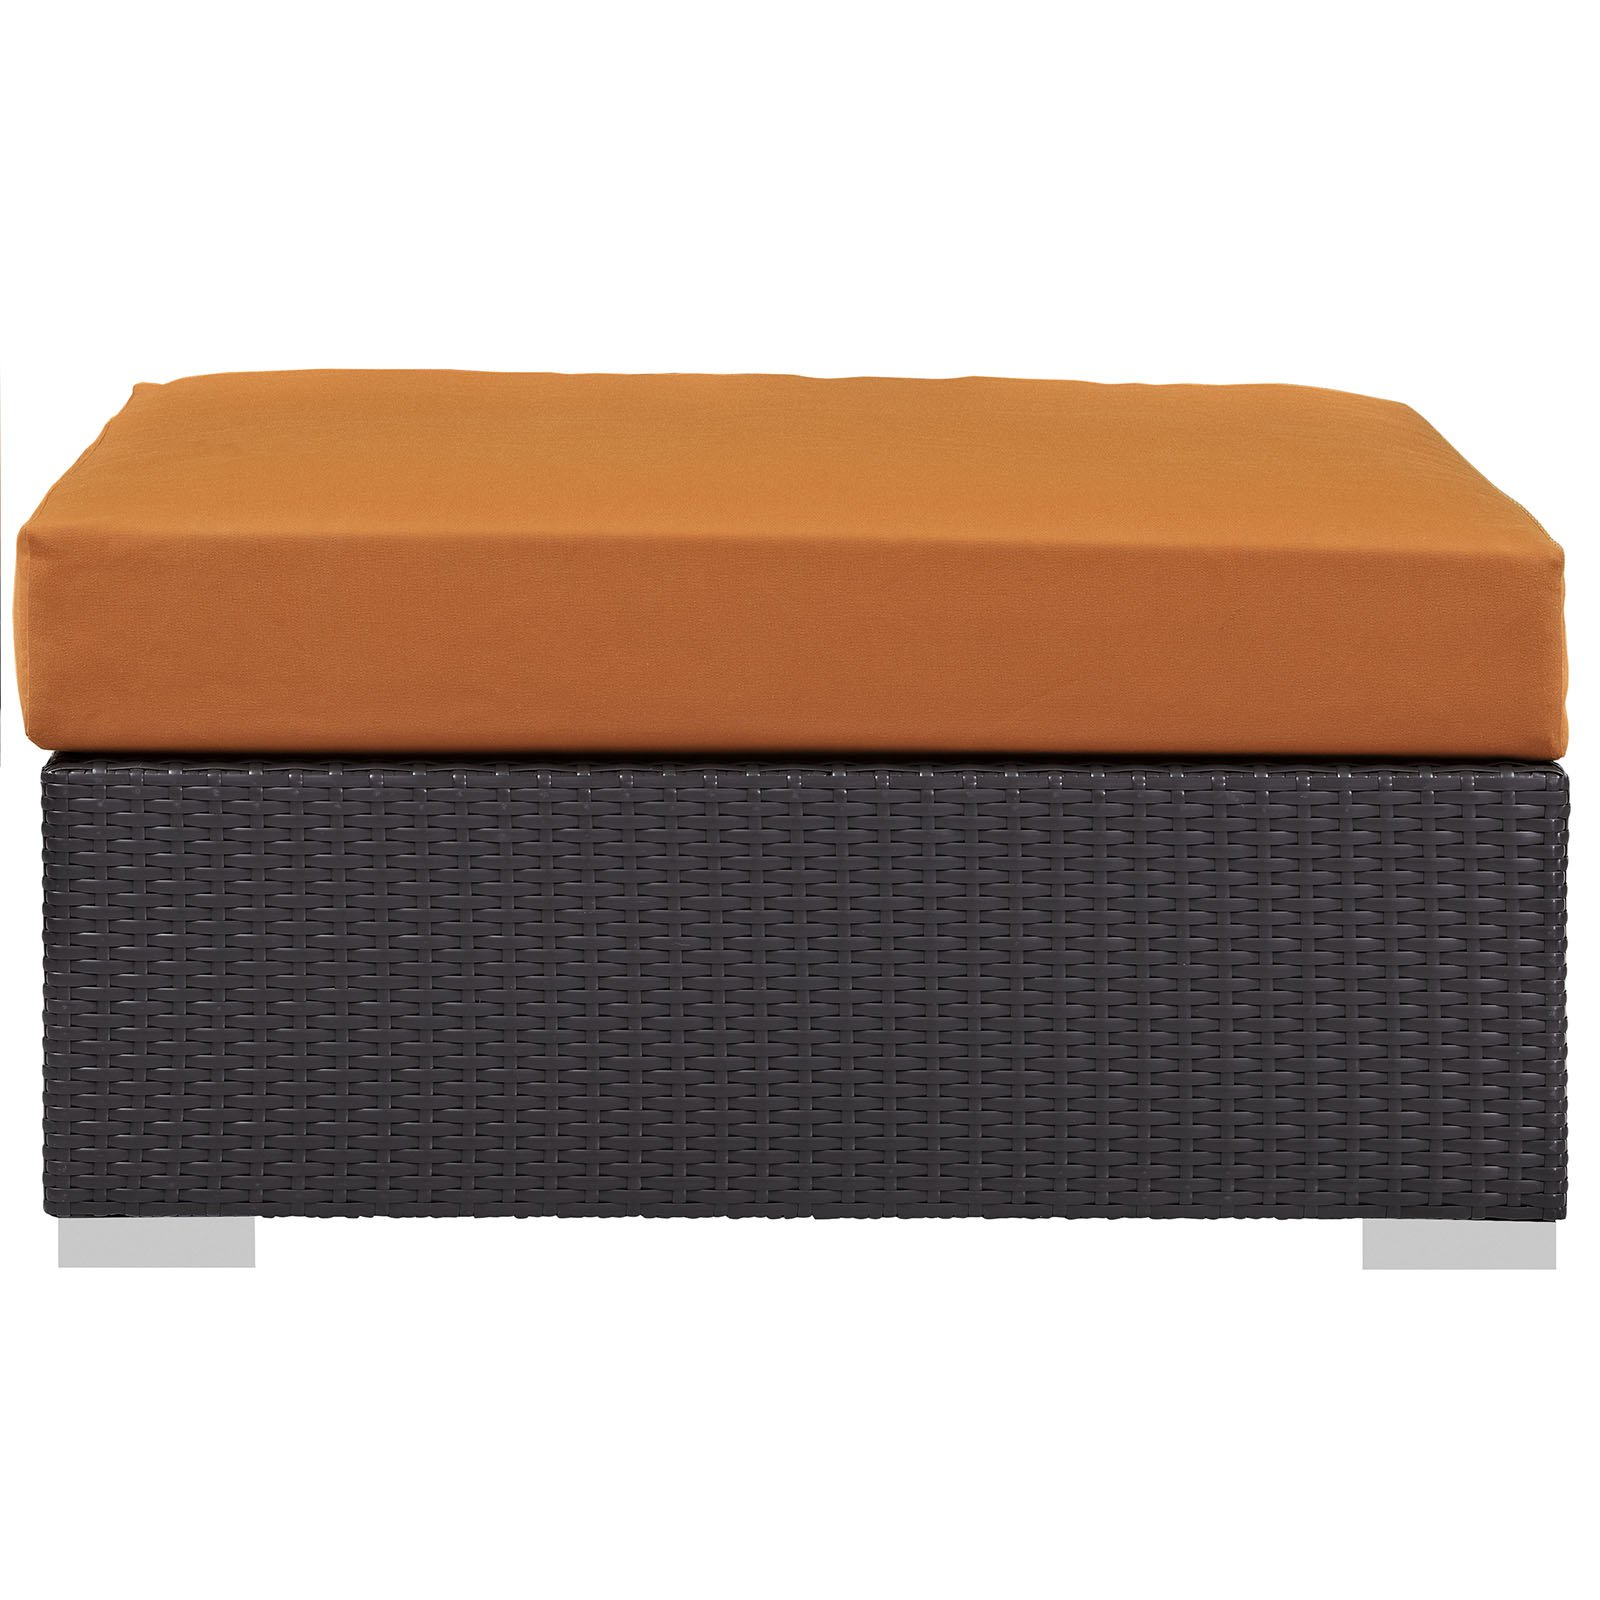 Modway Convene Outdoor Patio Large Square Ottoman, Multiple Colors